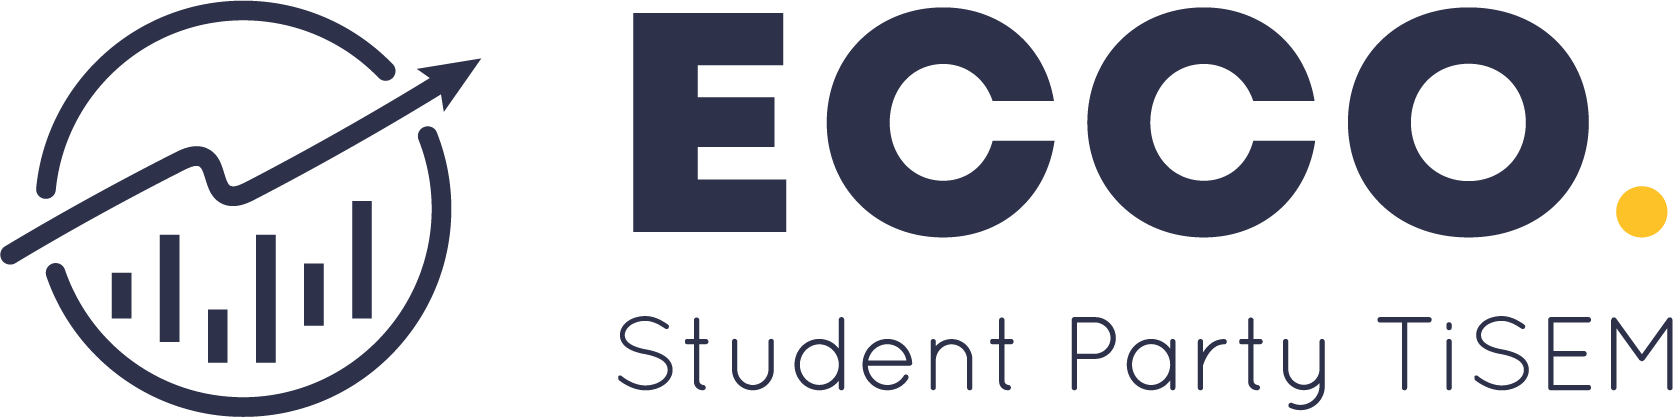 Student party ECCO